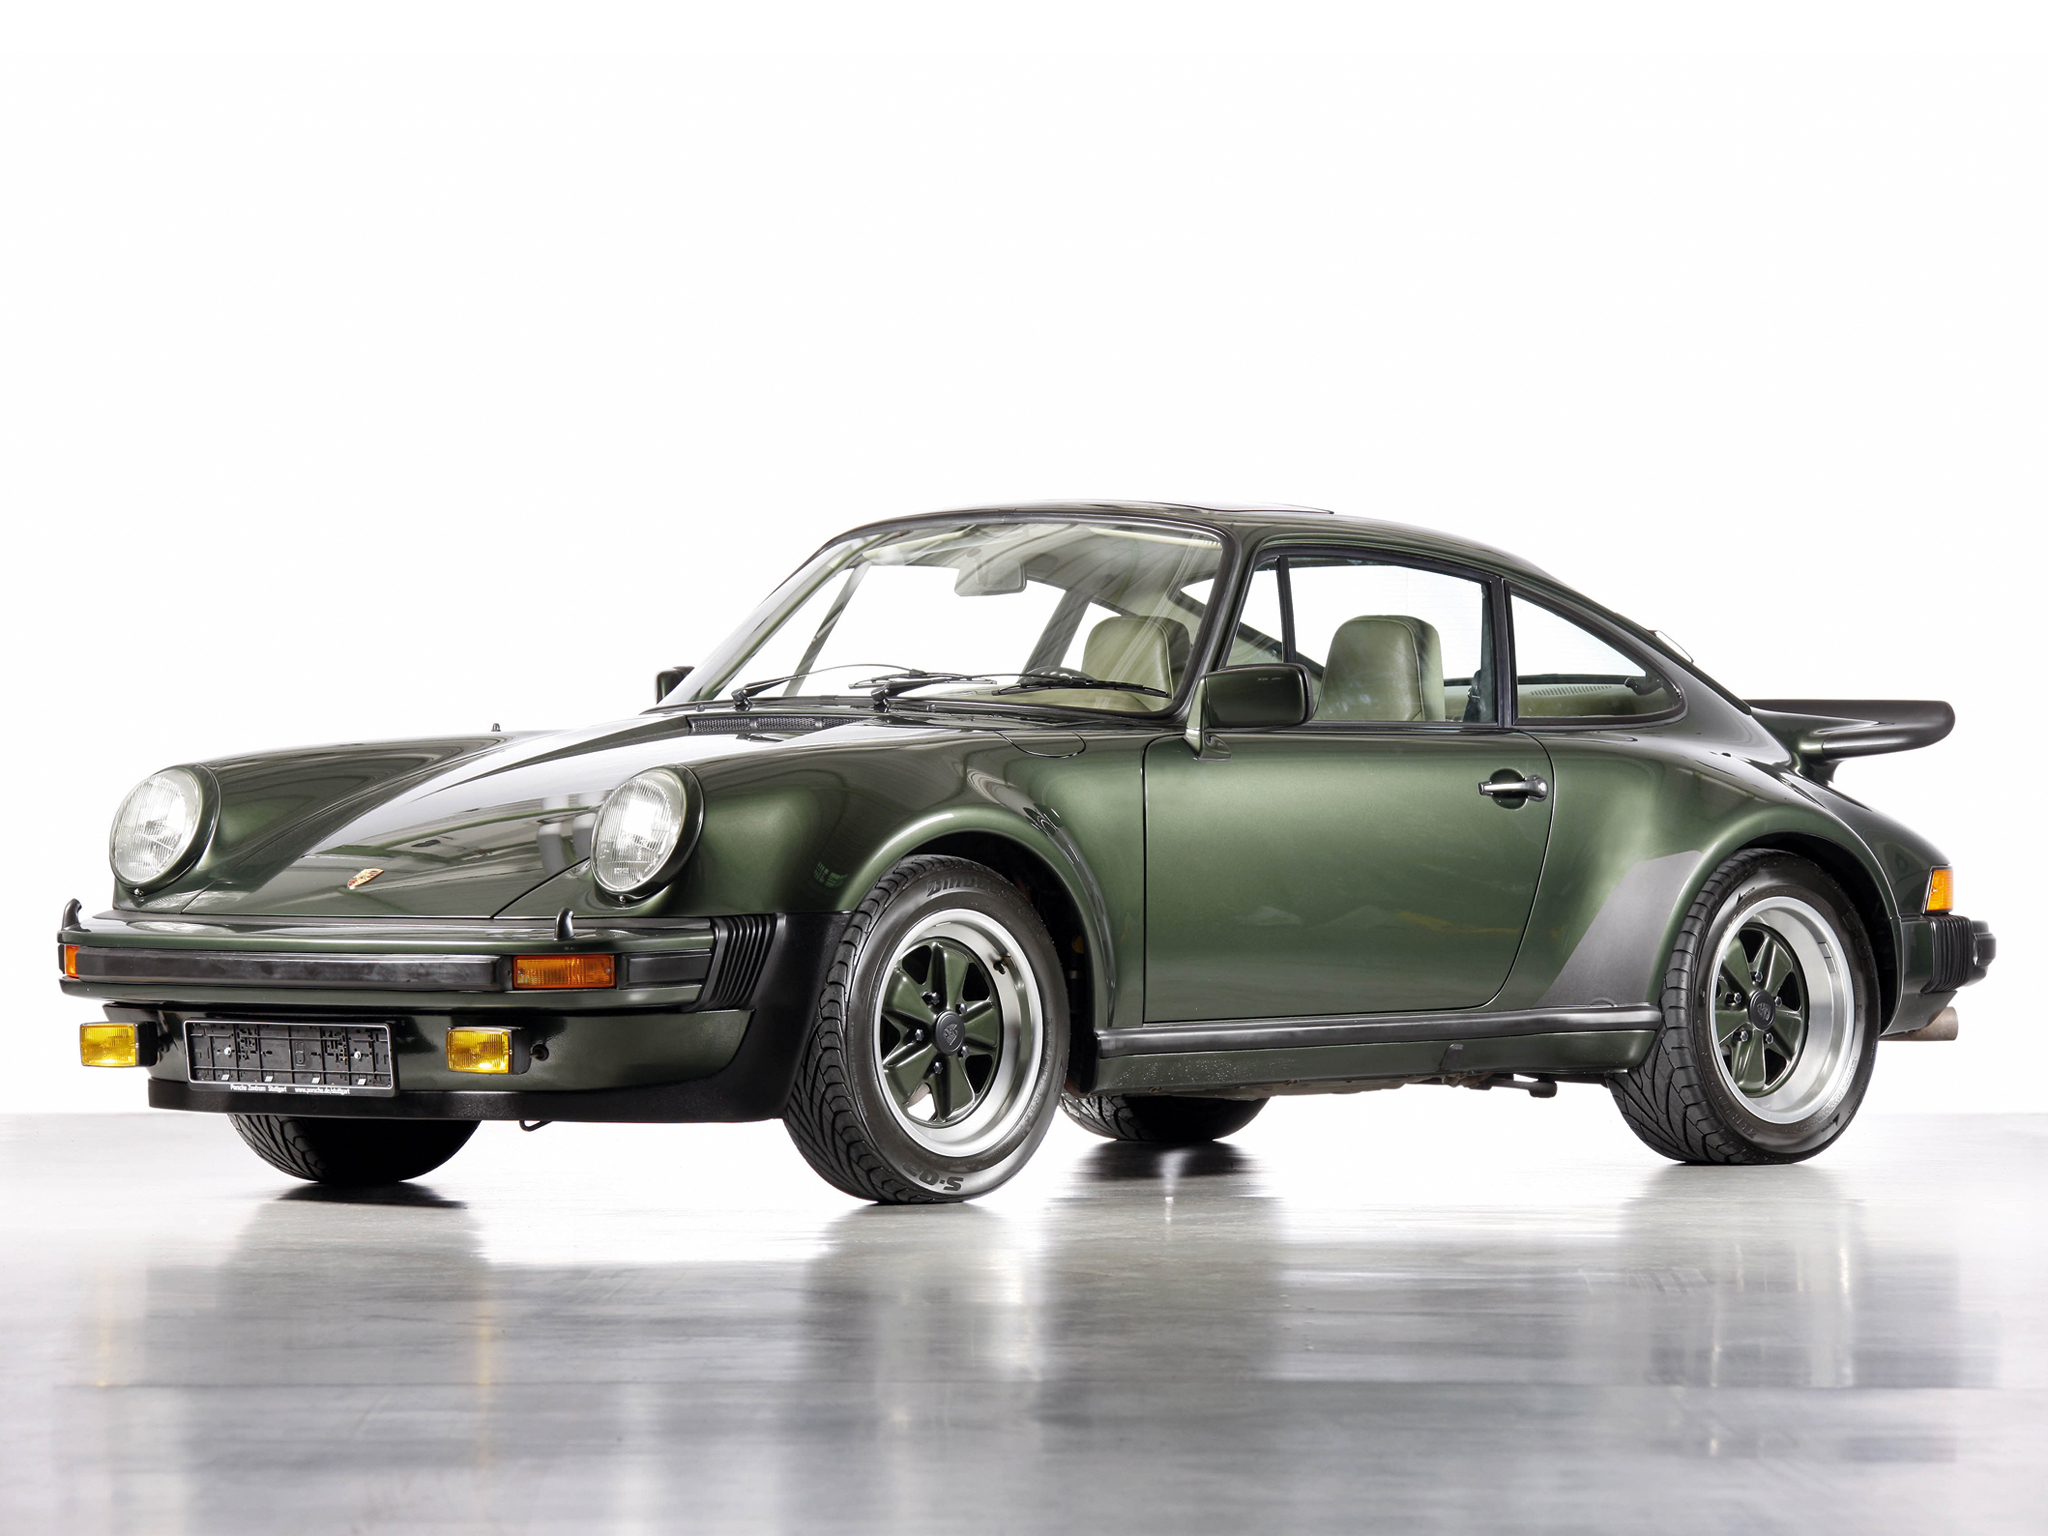 Porsche 930 Turbo (1975 to 1989)